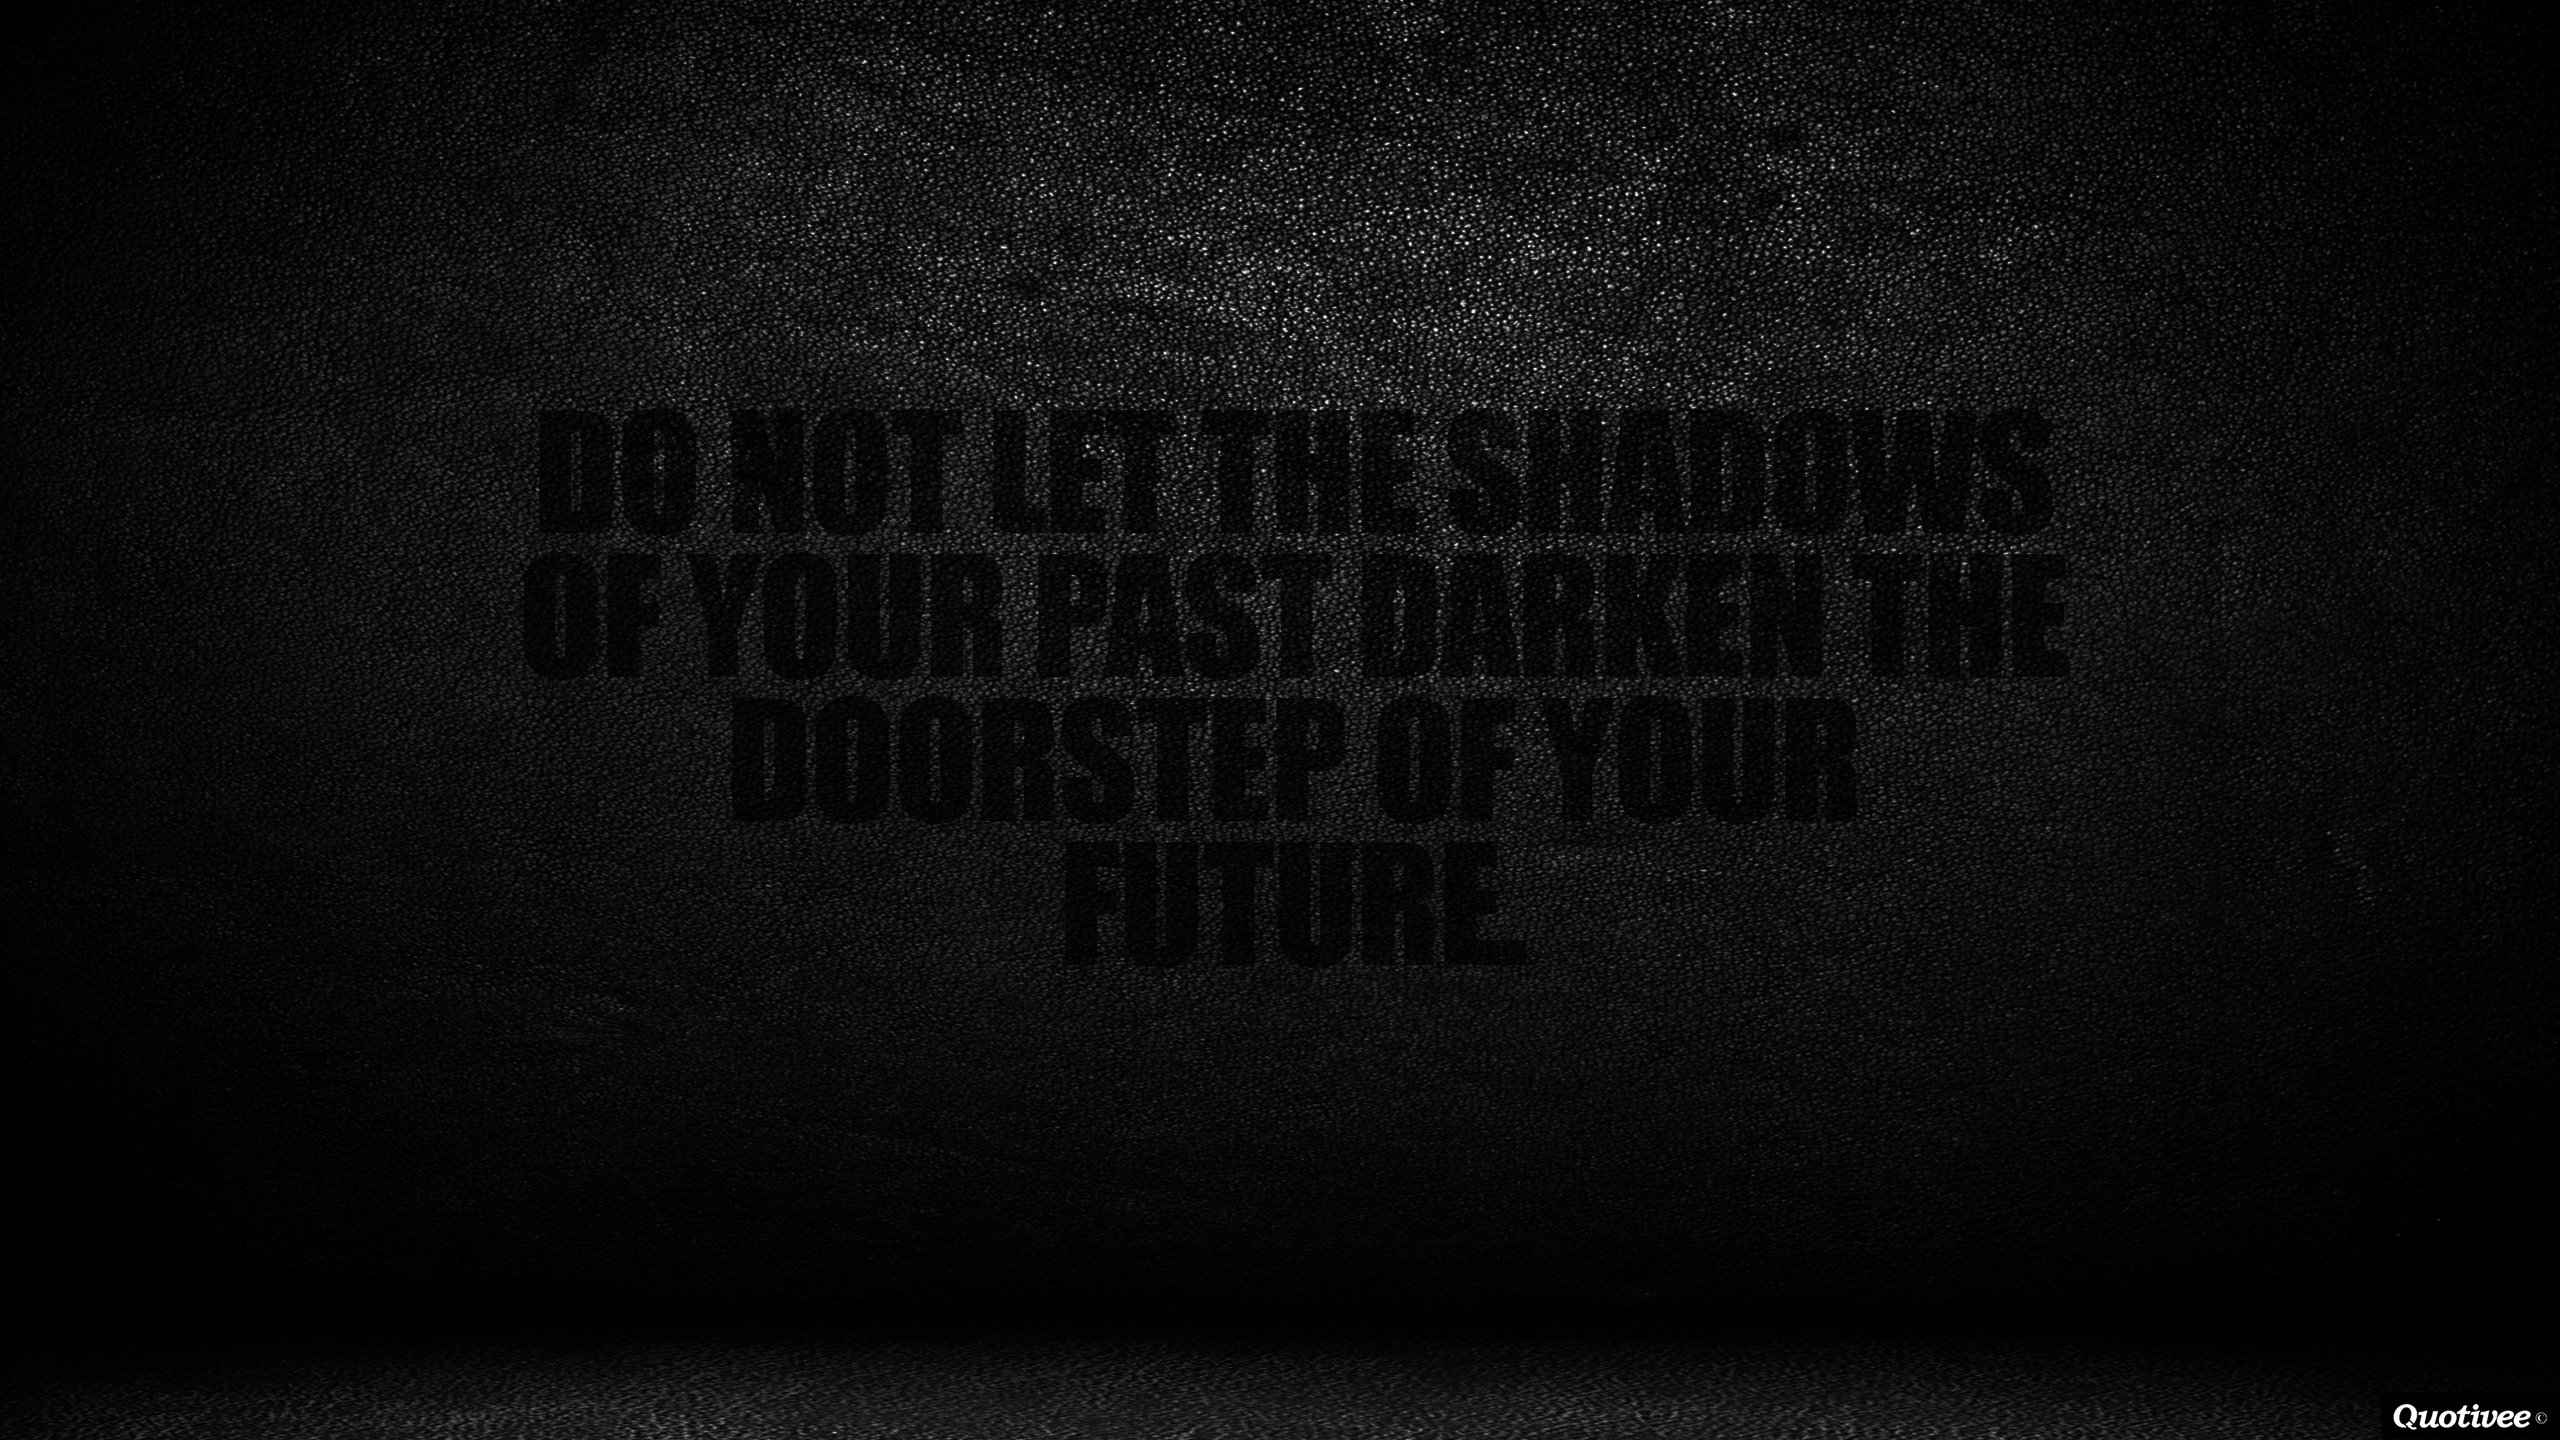 Shadows Of The Past   Inspirational Quotes Quotivee